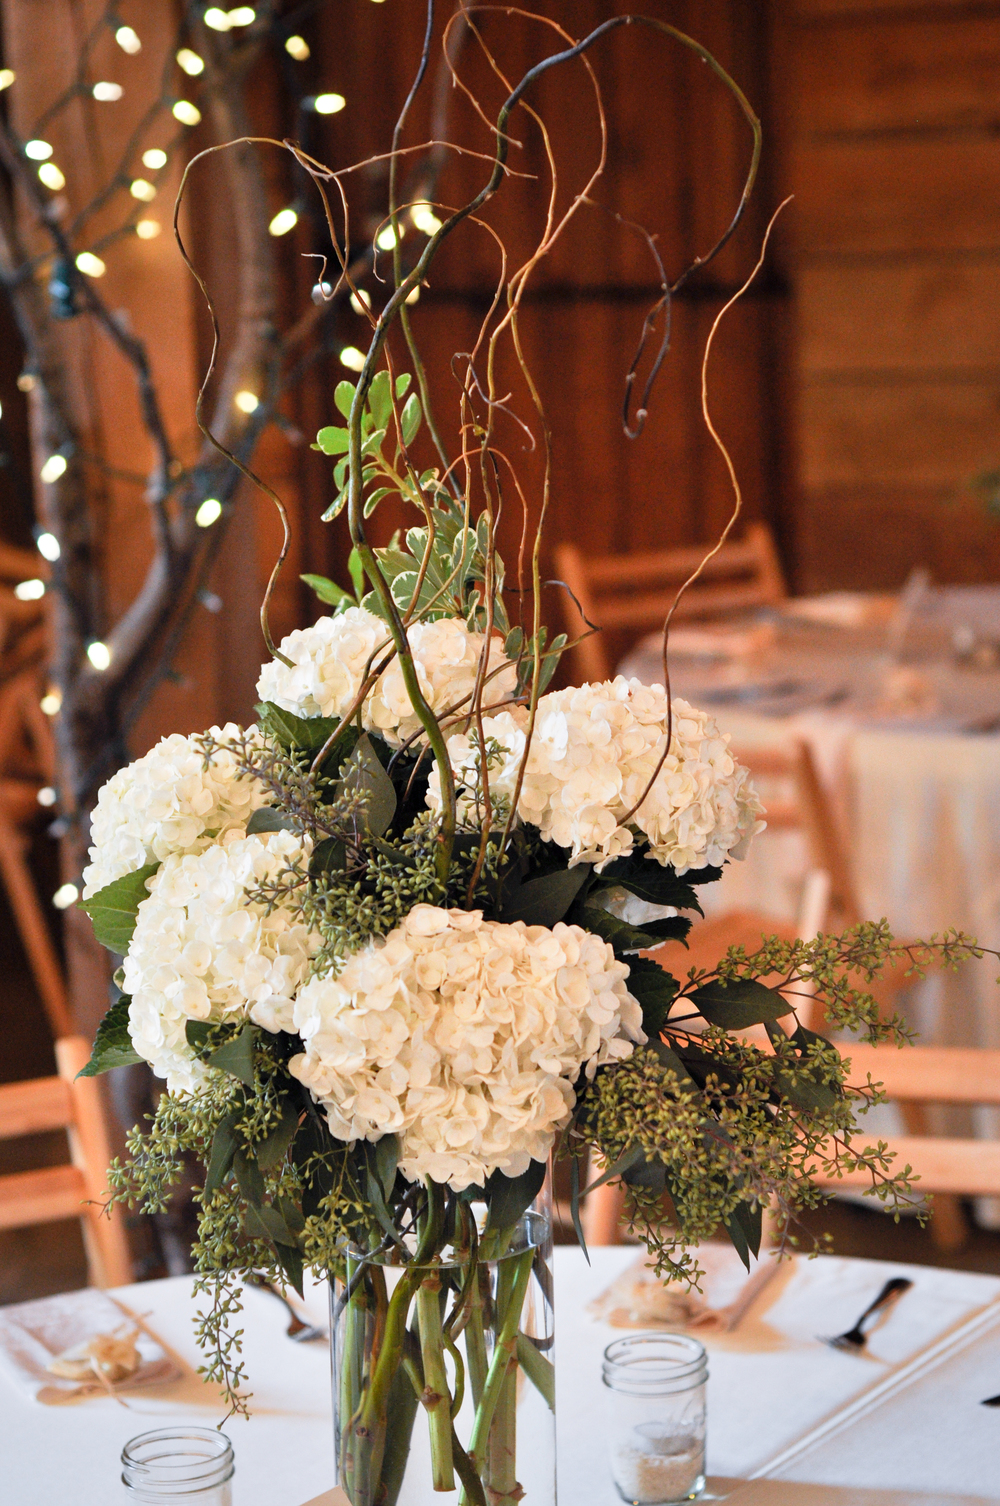 Rustic White, Pratt Place Inn & Barn, Bettencourt Chase Photography, Centerpiece